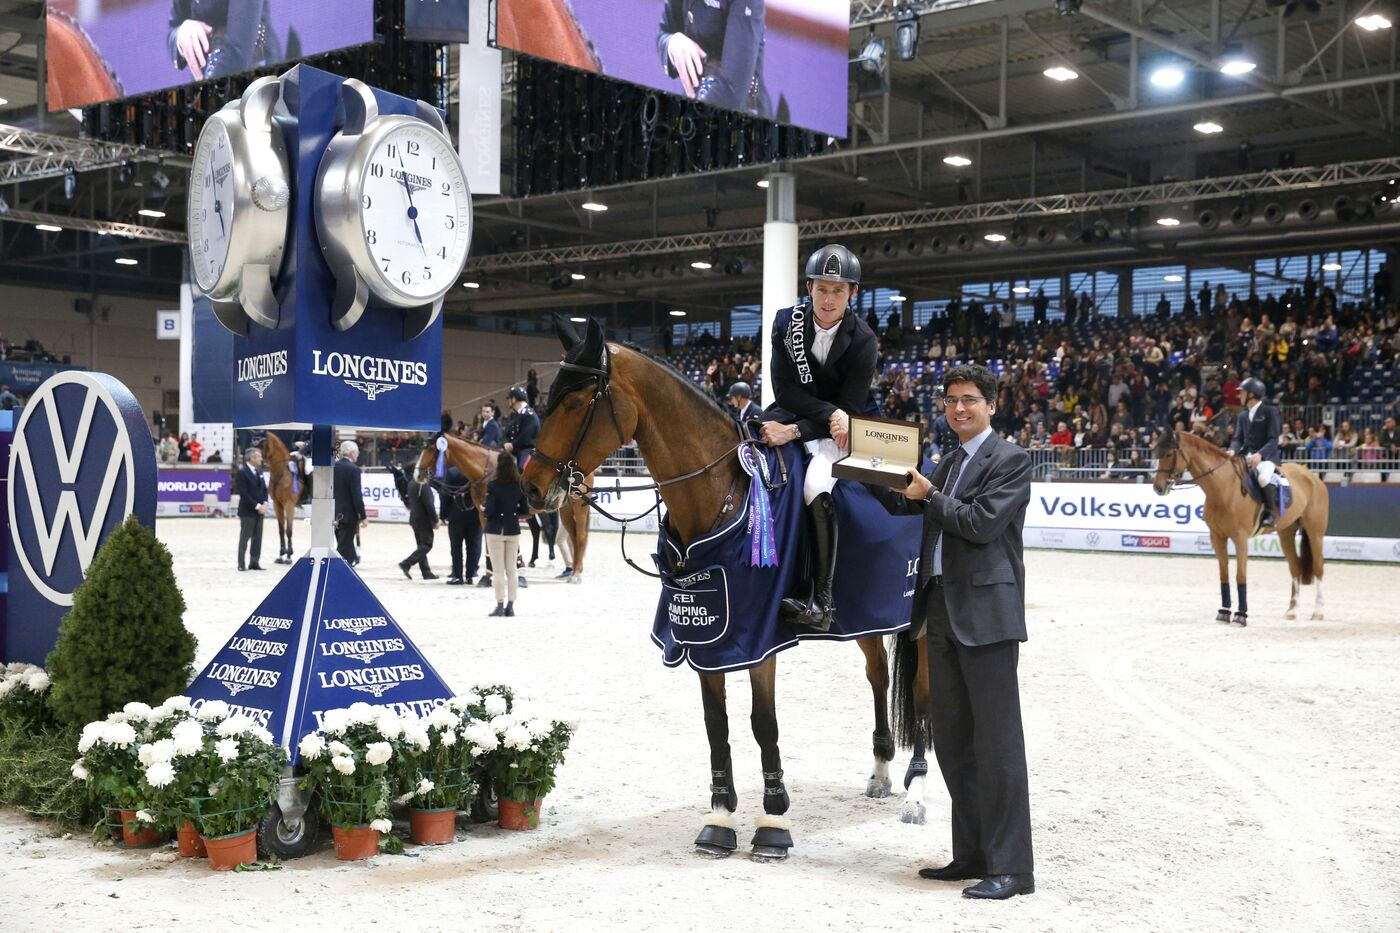 Longines Show Jumping Event: Scott Brash (GB) and Hello M'lady, convincing winners of the Longines FEI Jumping World Cup Verona  5